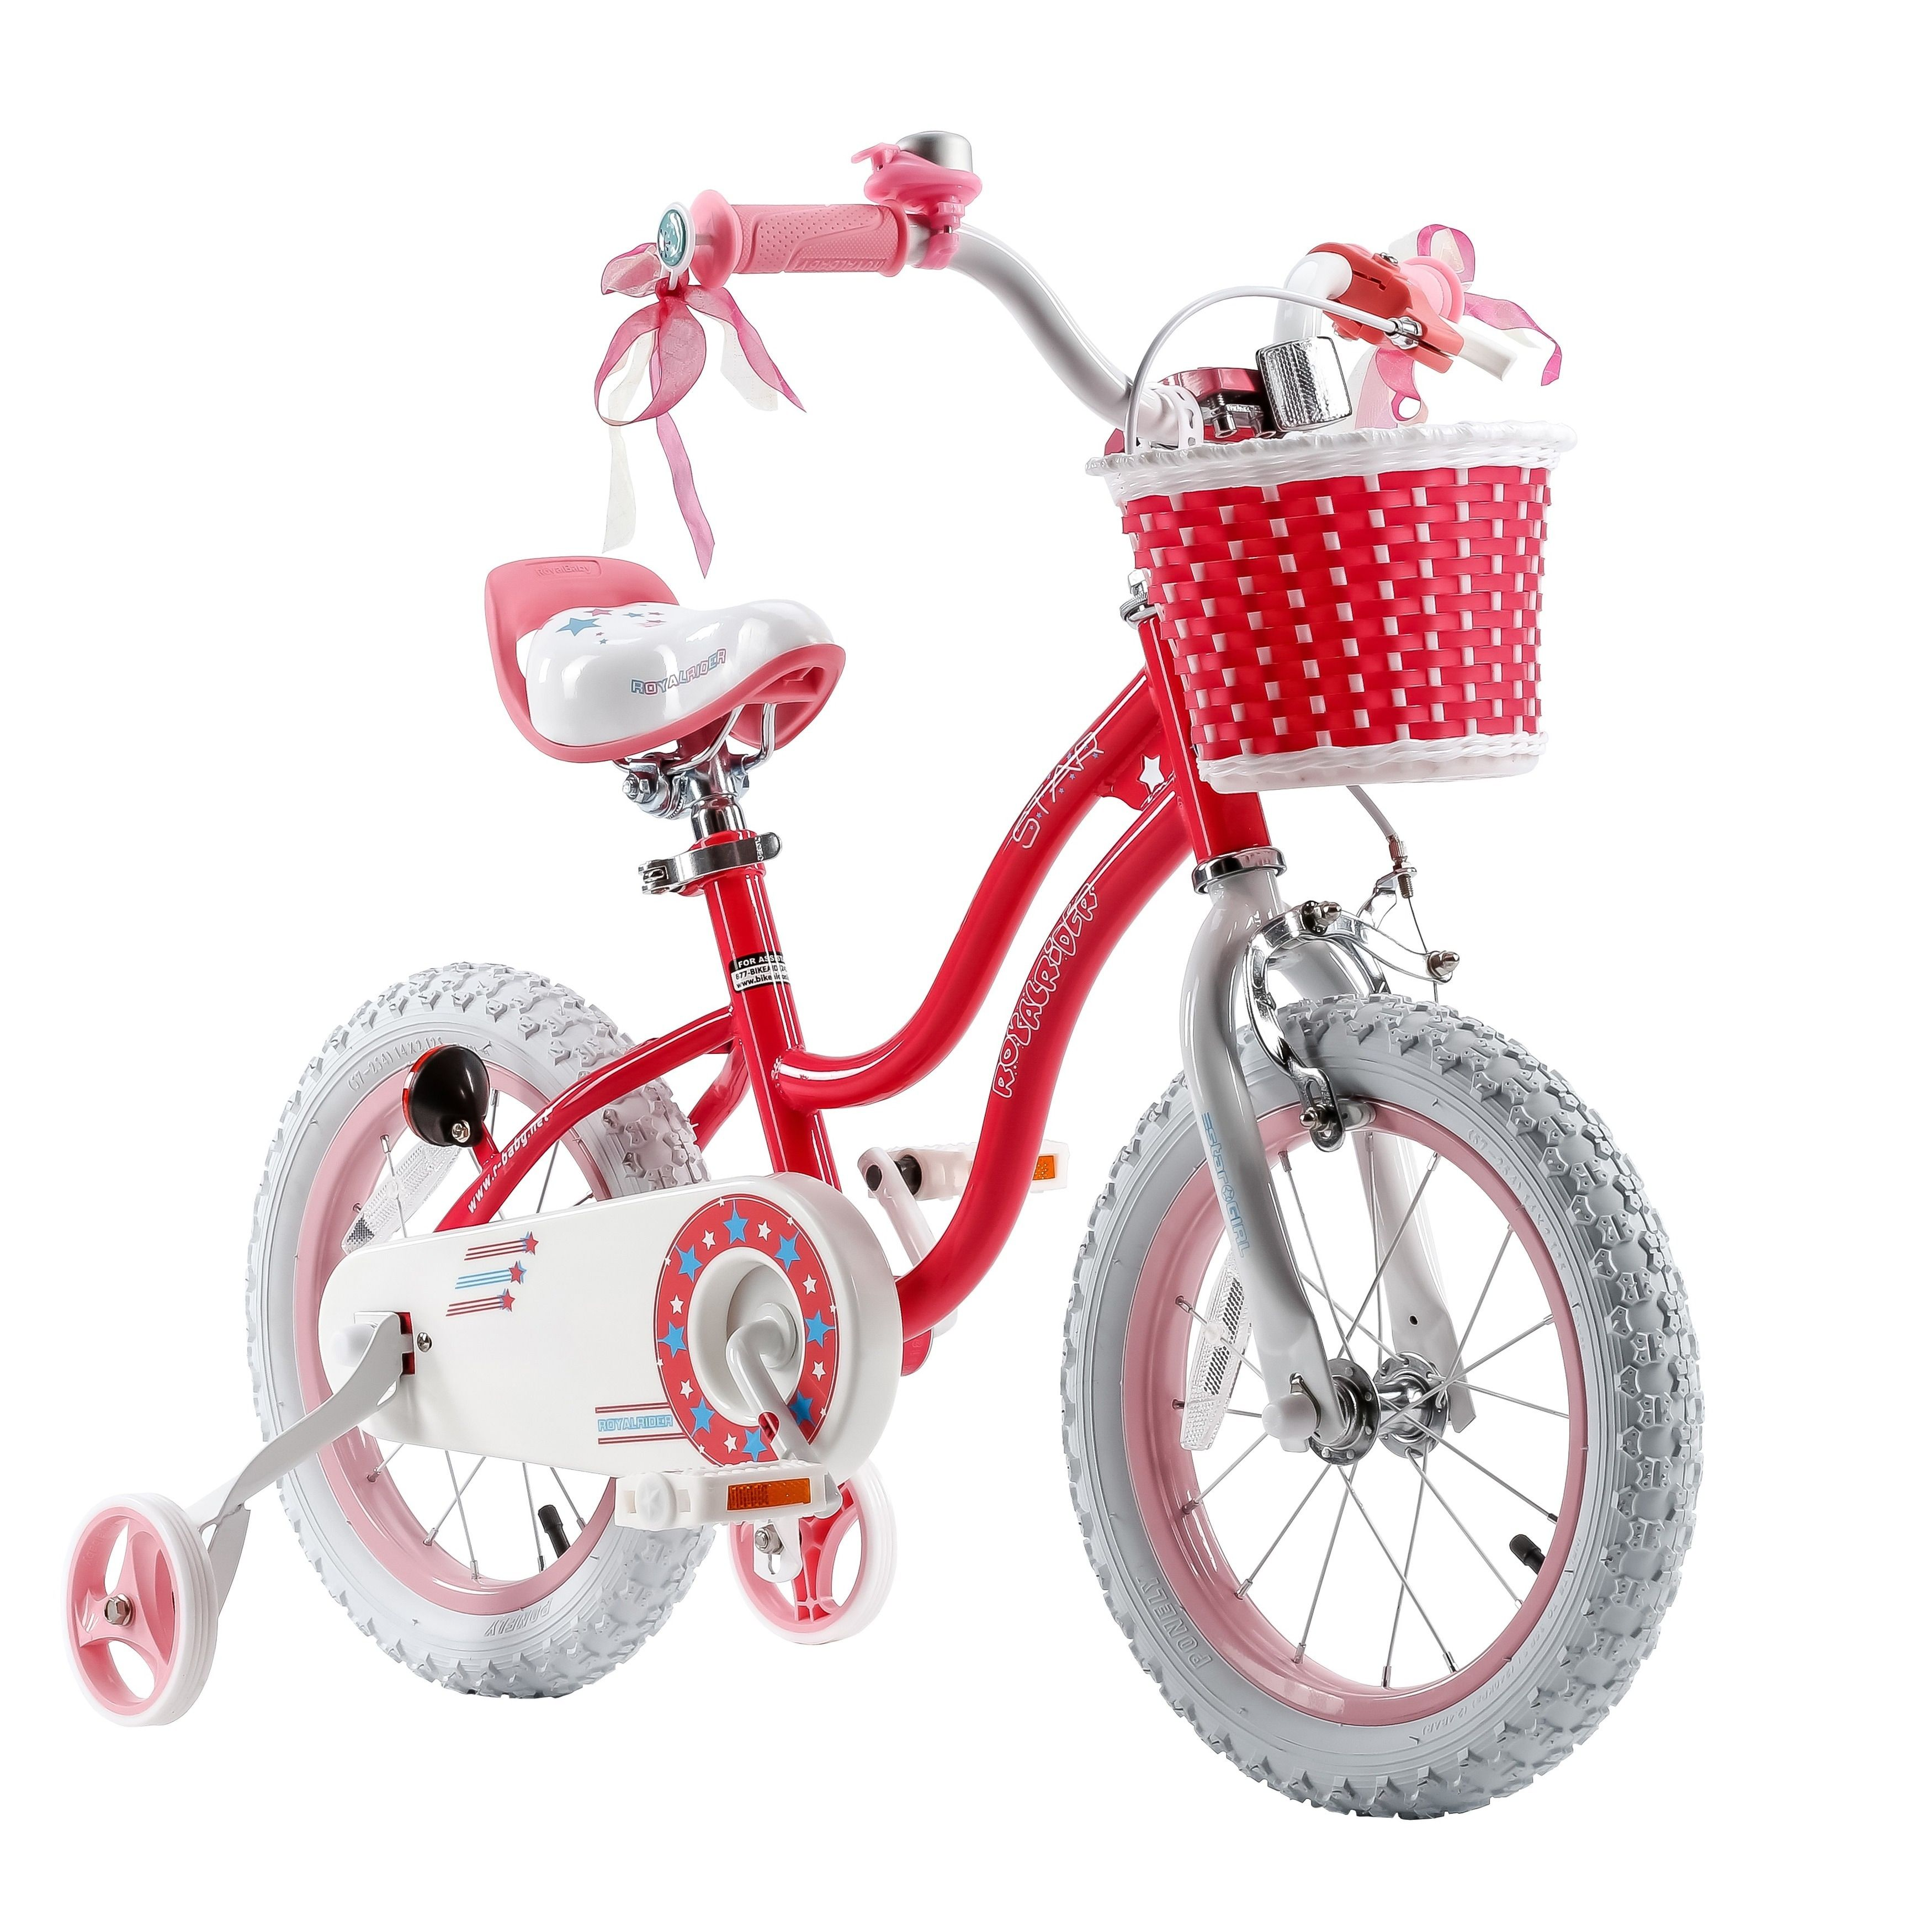 994e63d4b480 Royalbaby Stargirl 16-inch Kids' Bike with Training Wheels and Basket - 16  (Pink)